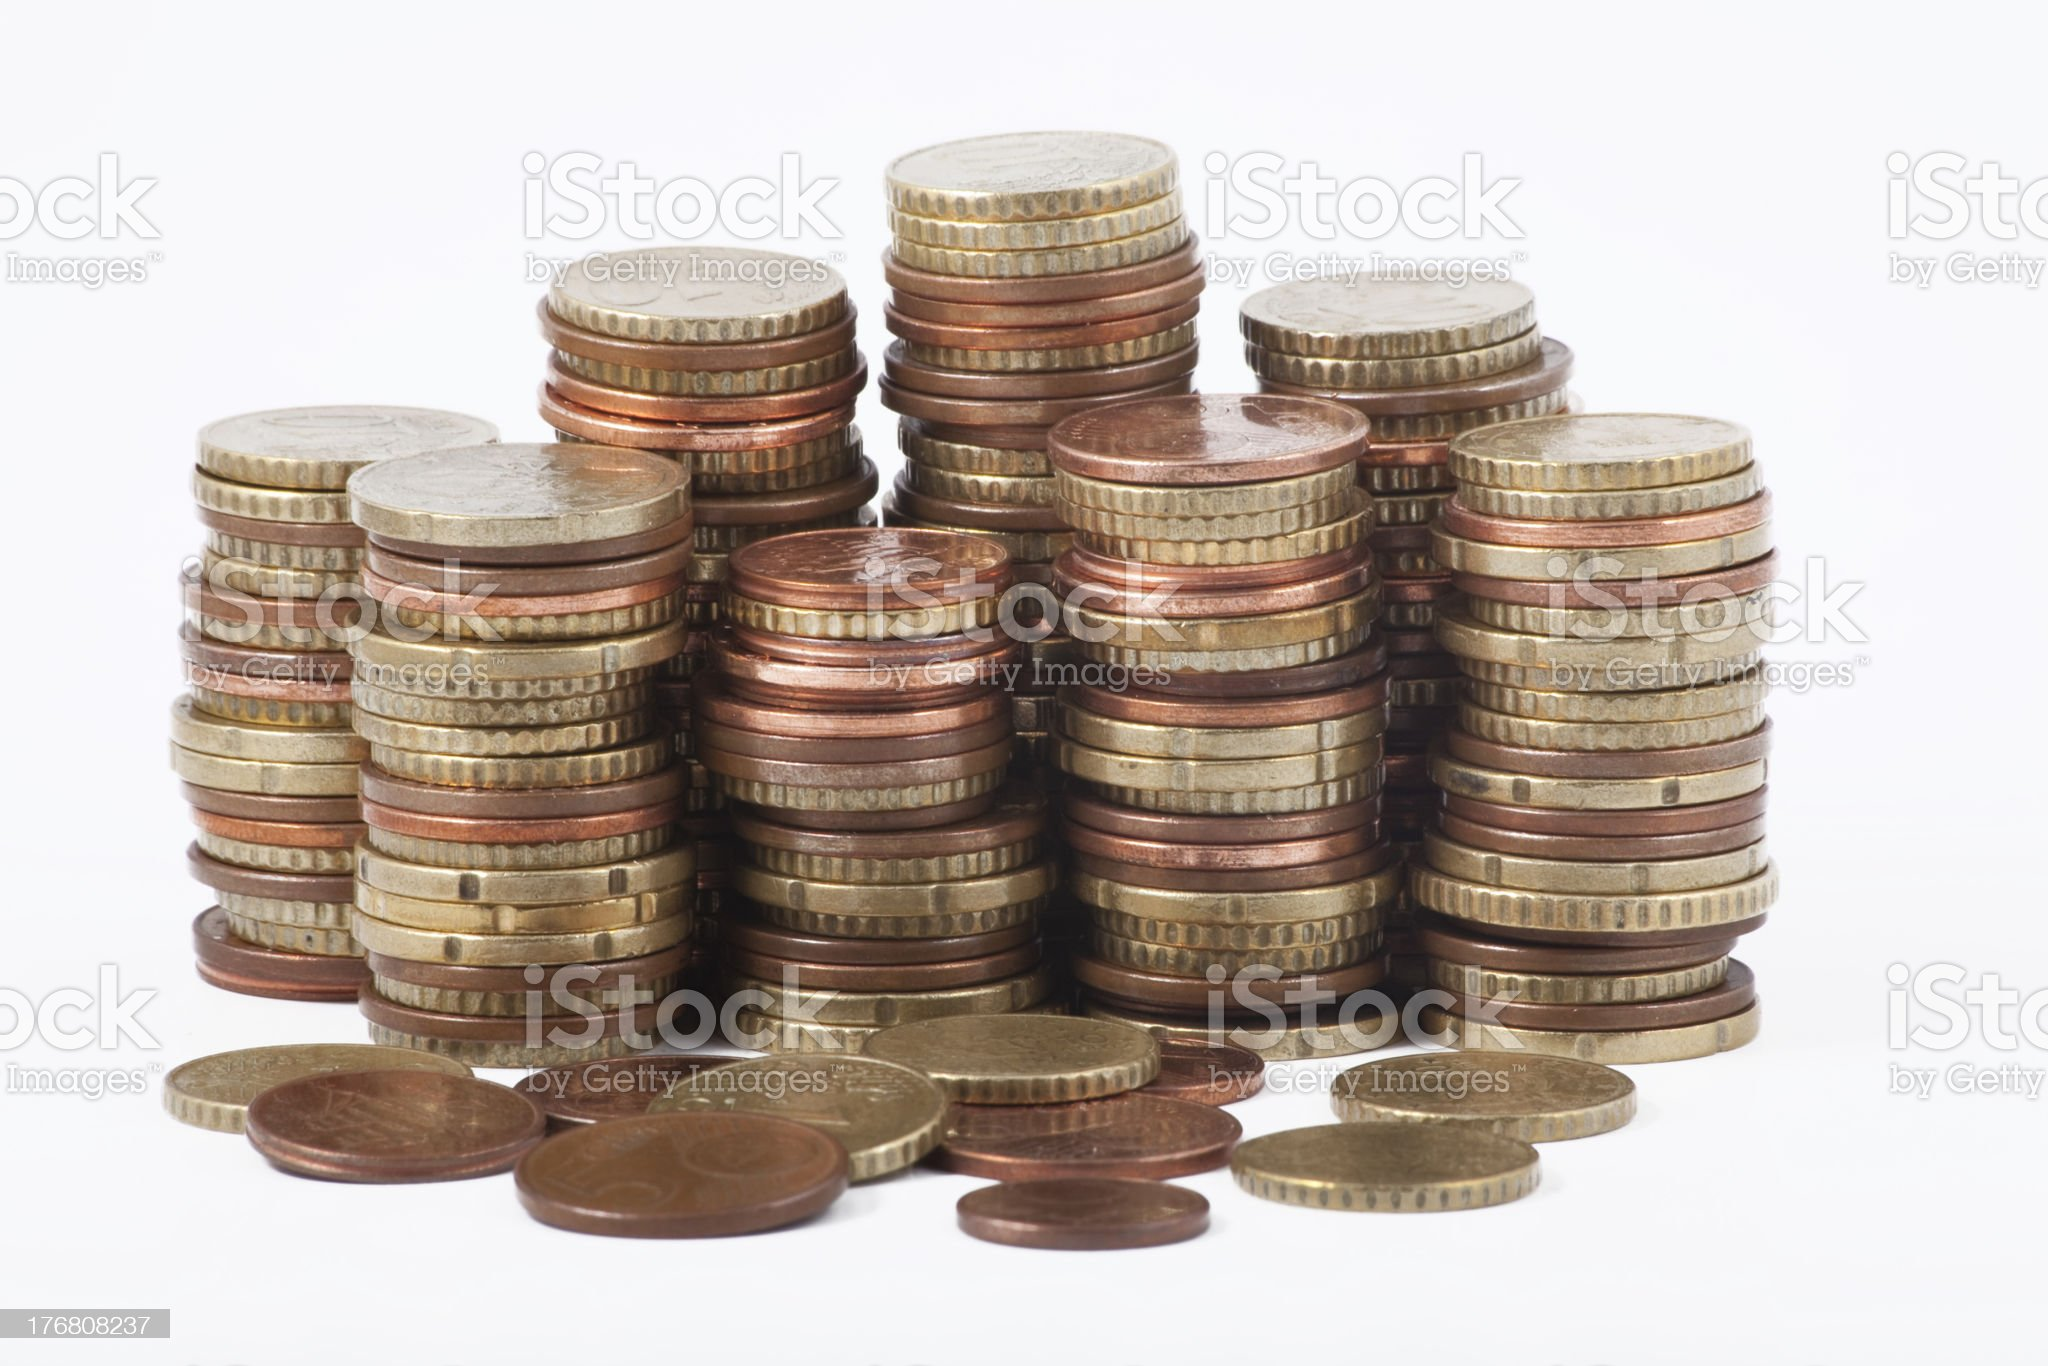 Money - Euro coins royalty-free stock photo